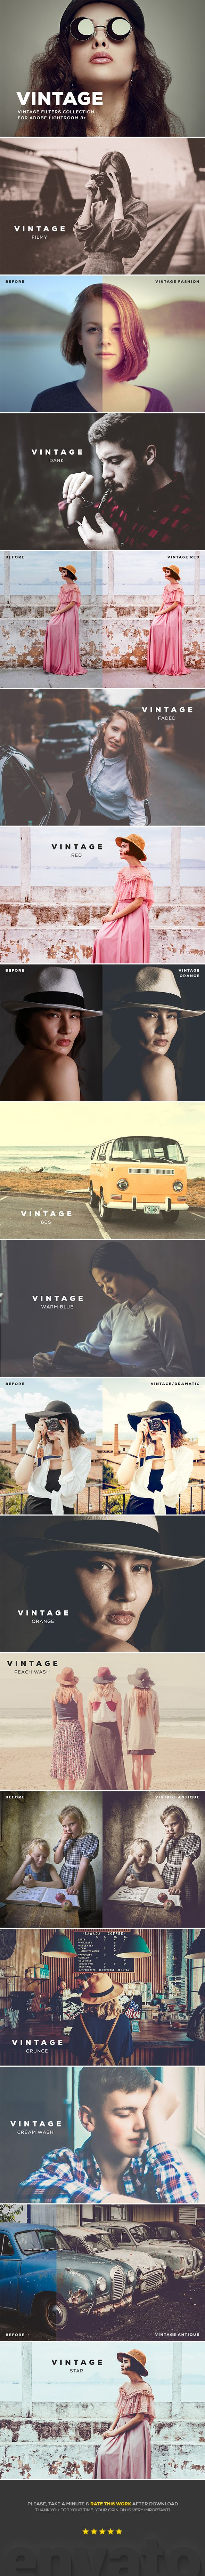 Vintage  Lightroom Presets  #portrait #vintage presets • Download ➝ https://graphicriver.net/item/vintage-lightroom-presets/18516136?ref=pxcr